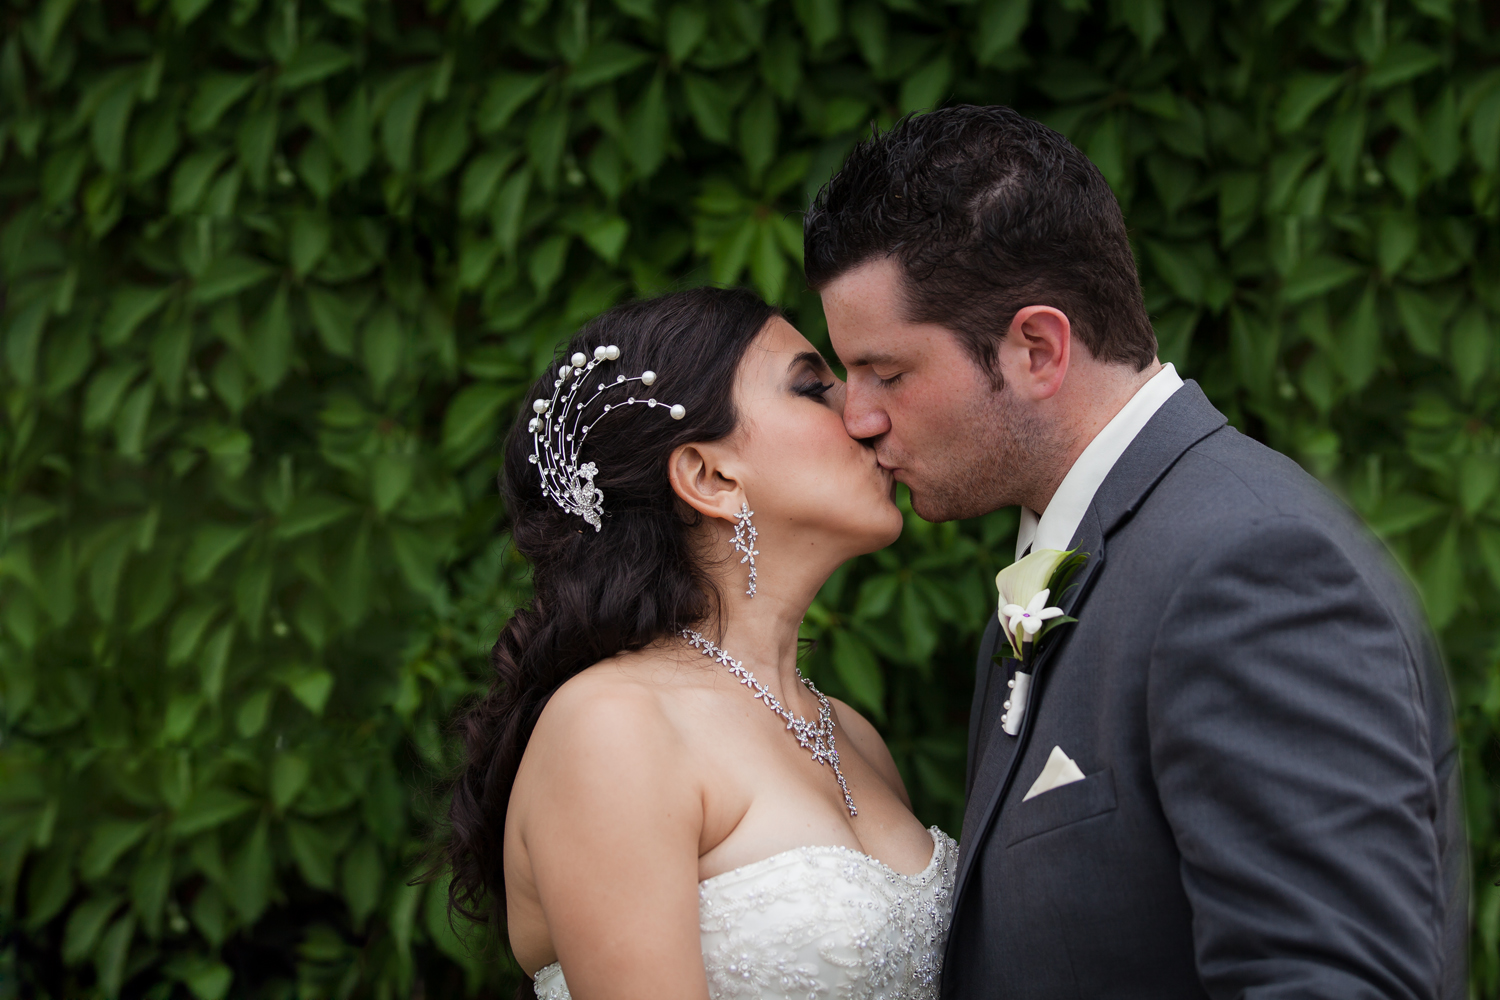 Toronto Wedding Photography - Steph & Kyle 19.jpg